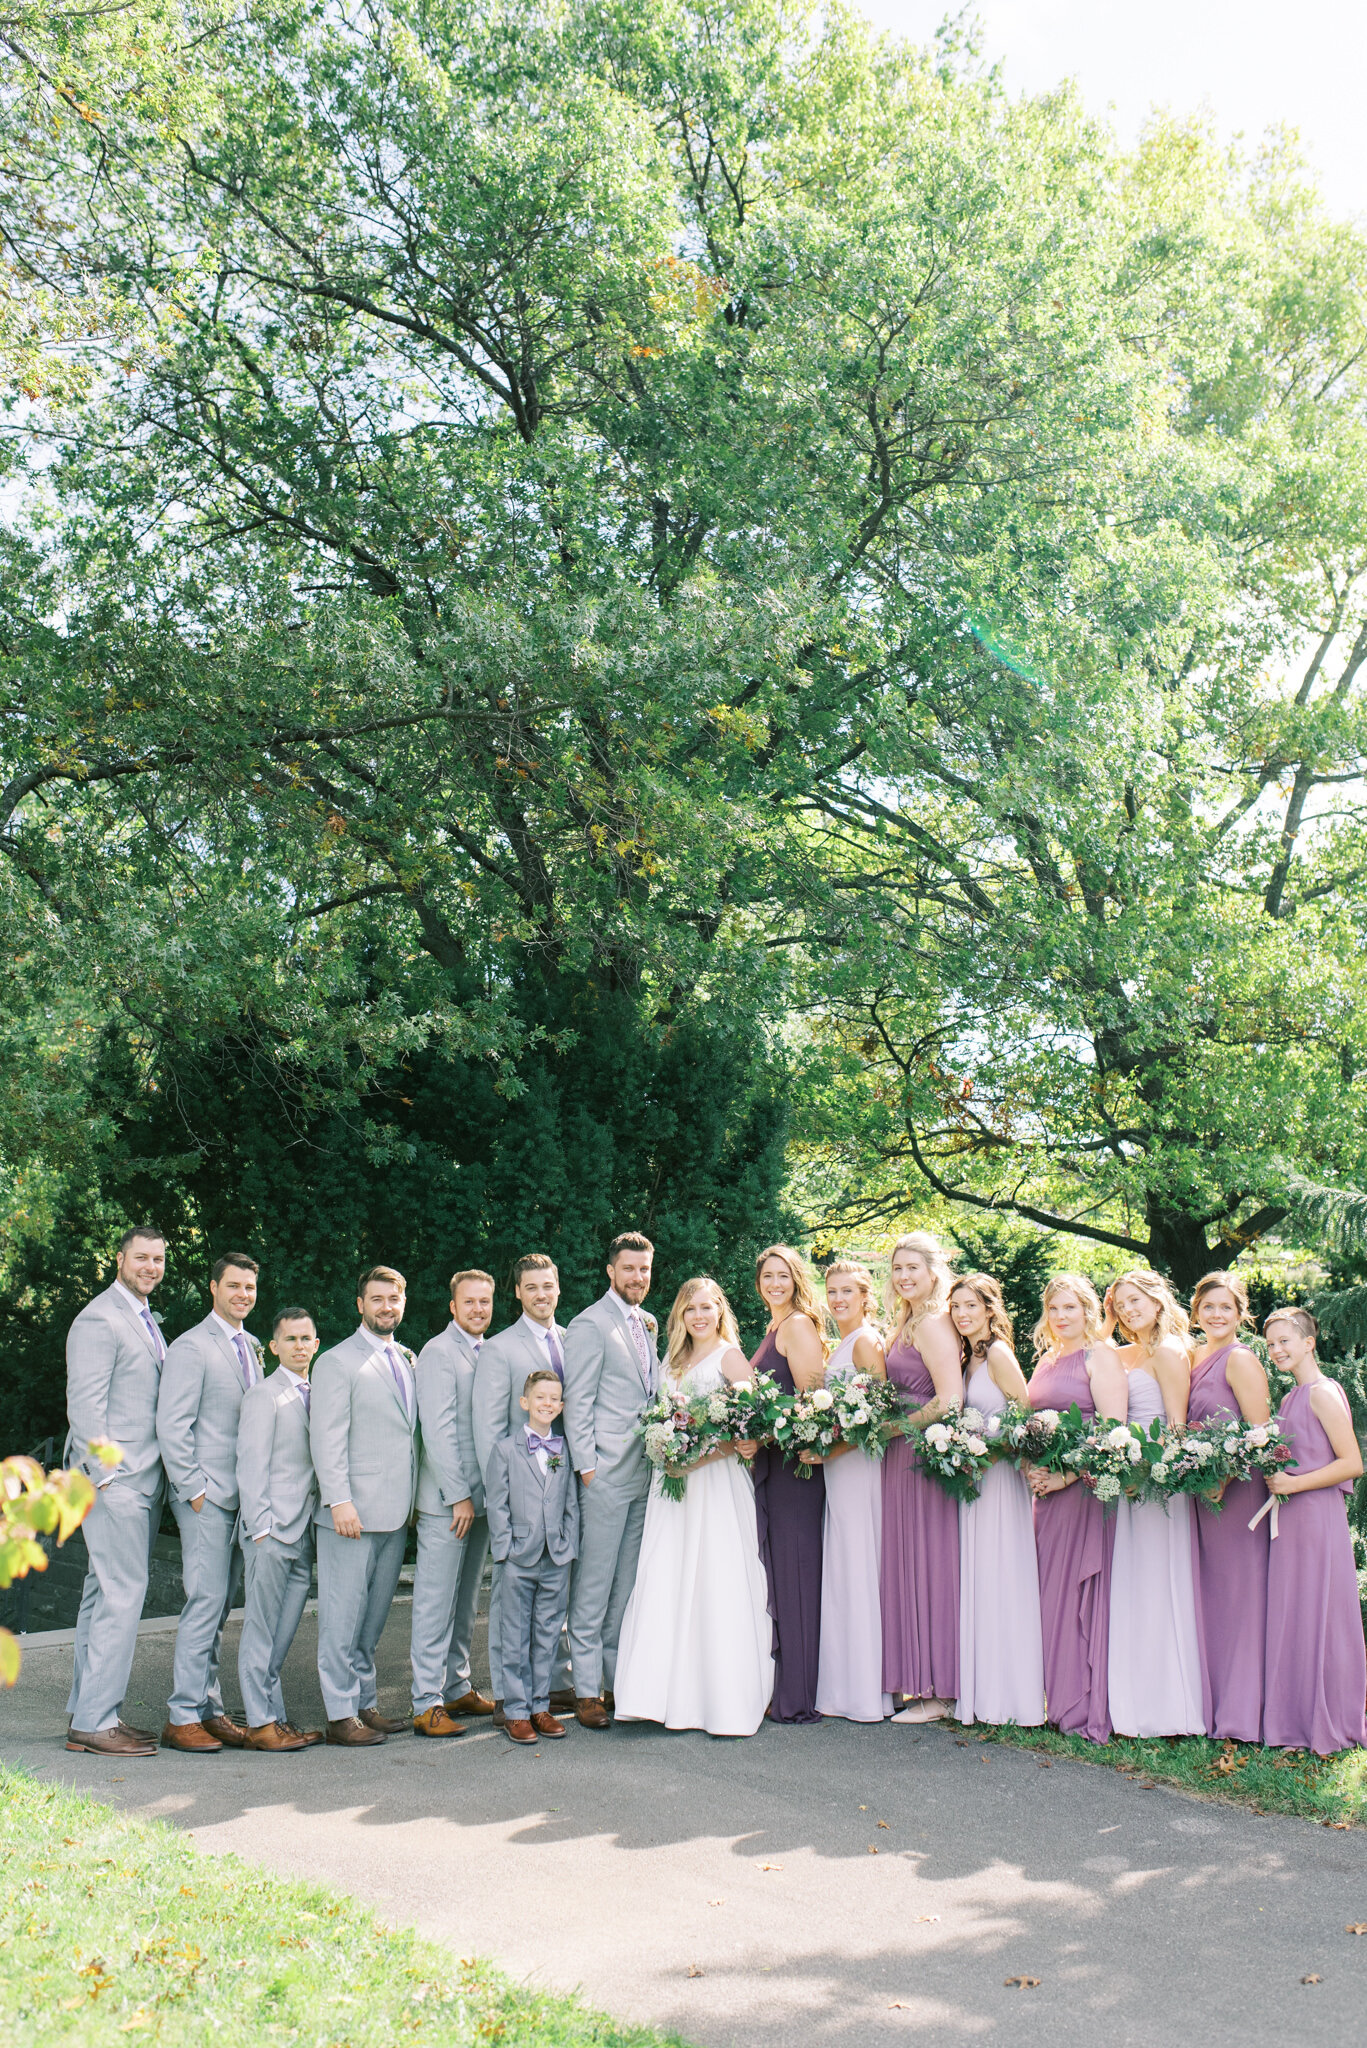 Royal Botanical Gardens Rock Garden Wedding